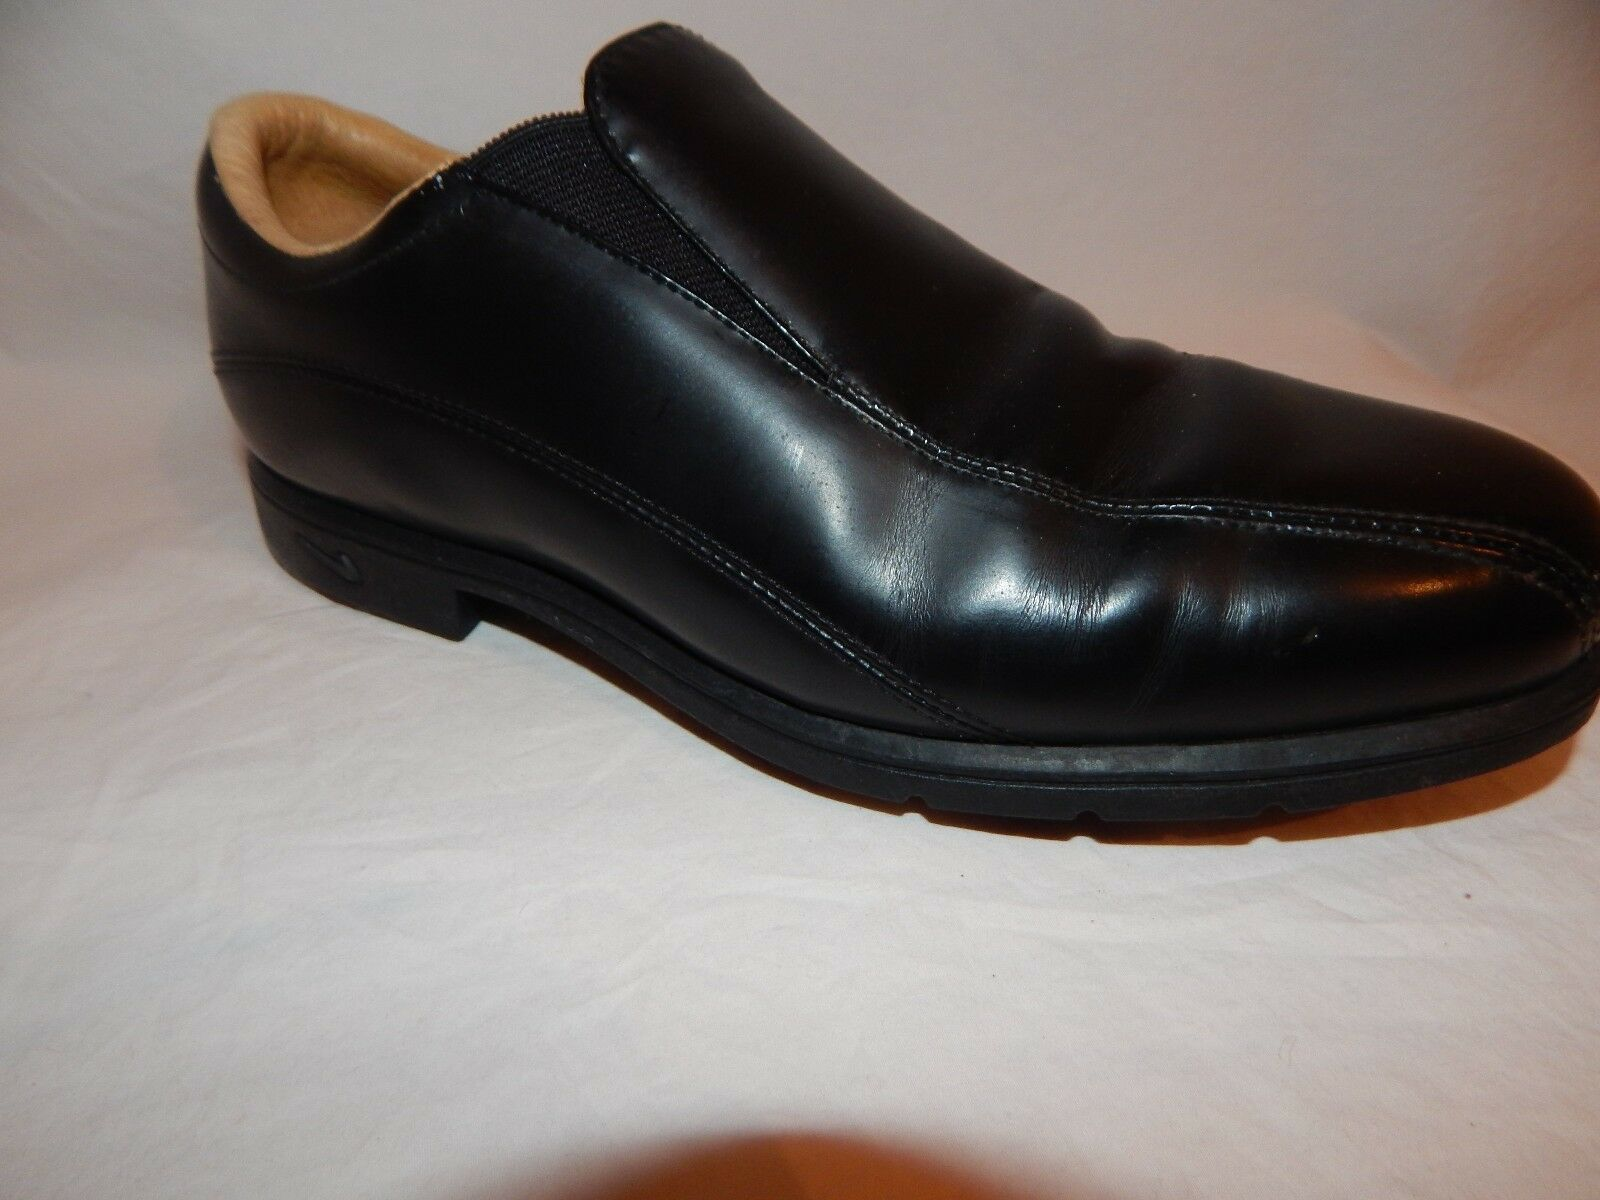 NIKE AIR LADIES COMFORT LADIES AIR BLACK LEATHER SLIP-ON CLEATED GOLF SHOES SIZE 8 M b44d12